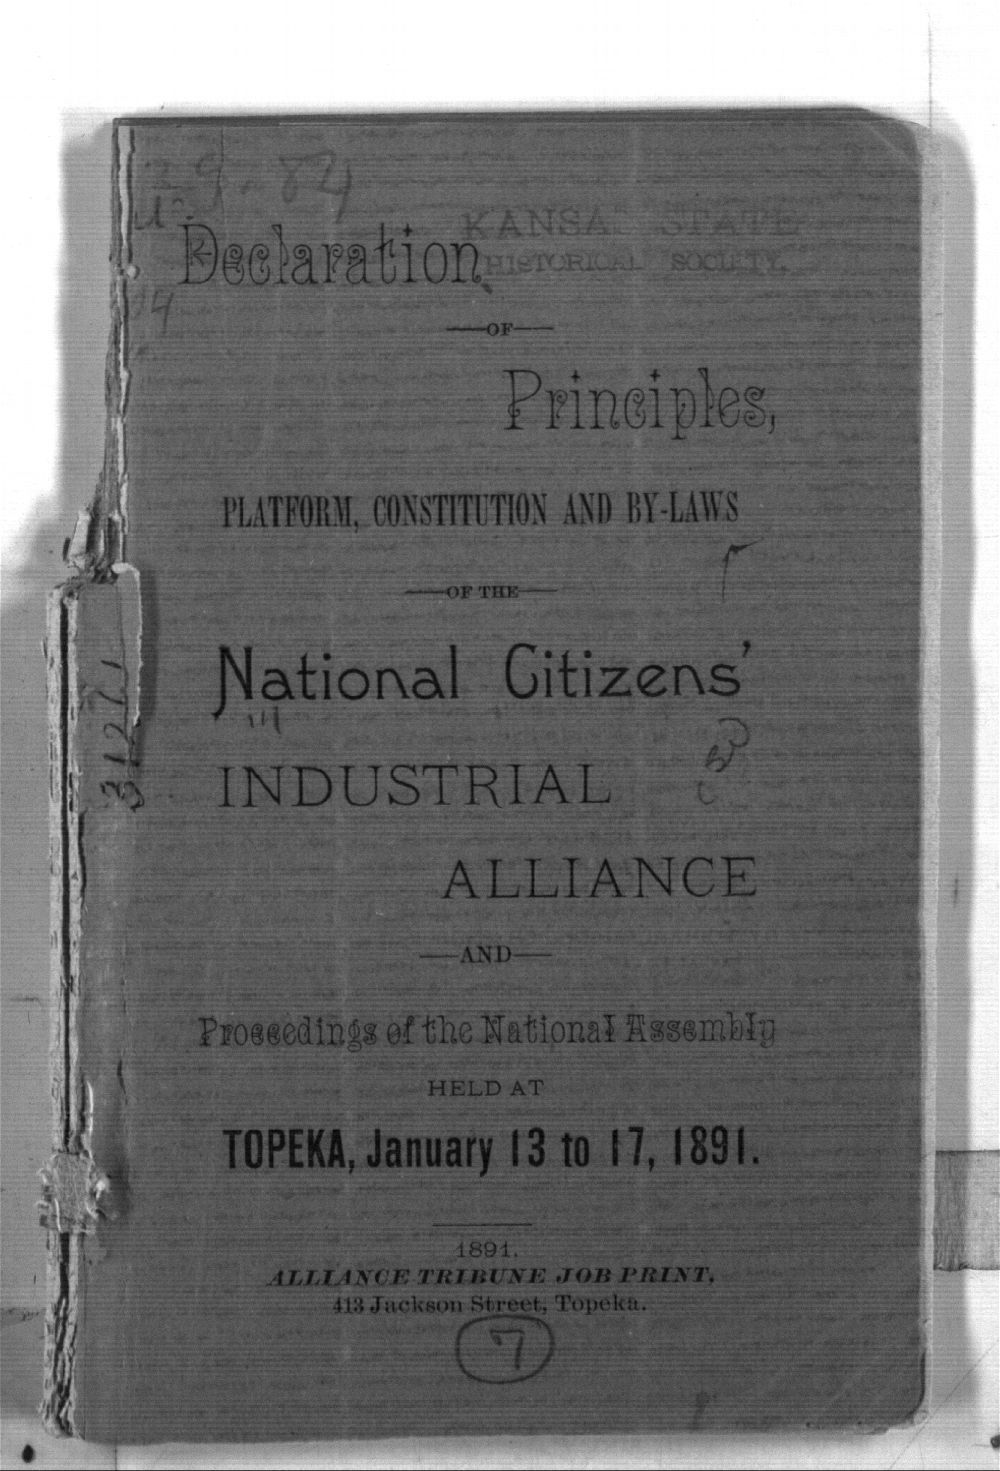 Declaration of principles, platform, constitution and by-laws of the National Citizens' Industrial Alliance and proceeding of the National Assembly held at Topeka, January 13 to 17, 1891 - Front Cover